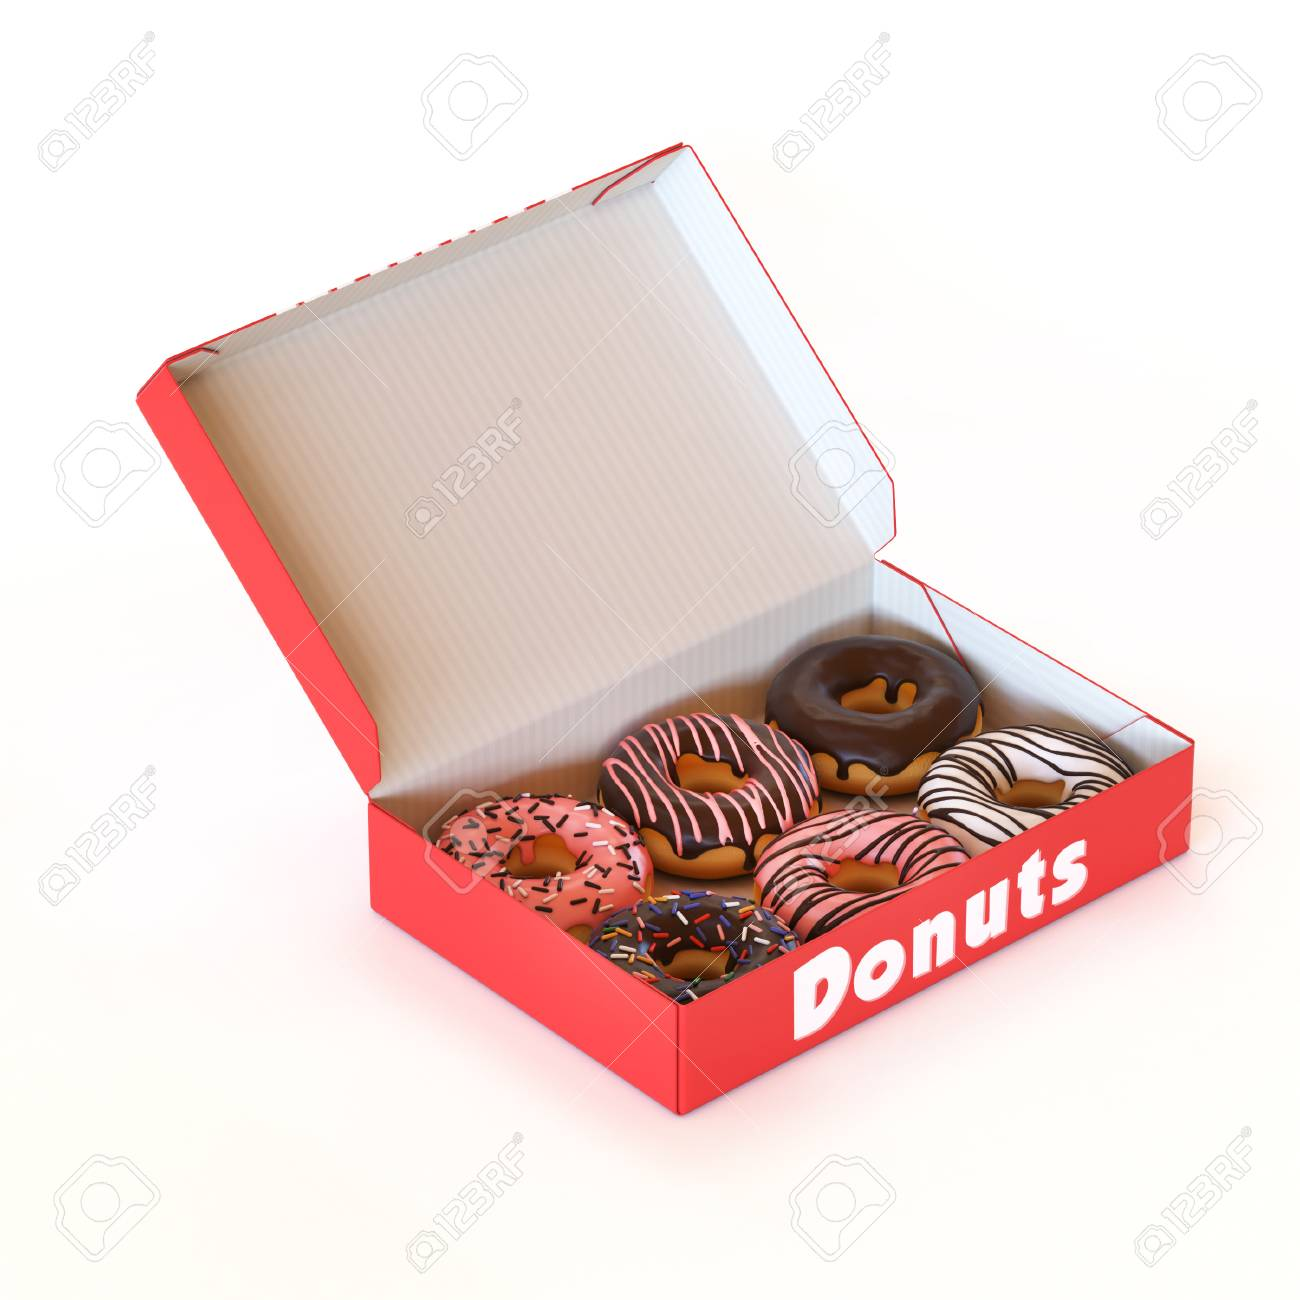 Music Box Kaufen Donut Box Isolated On White Background 3d Rendering